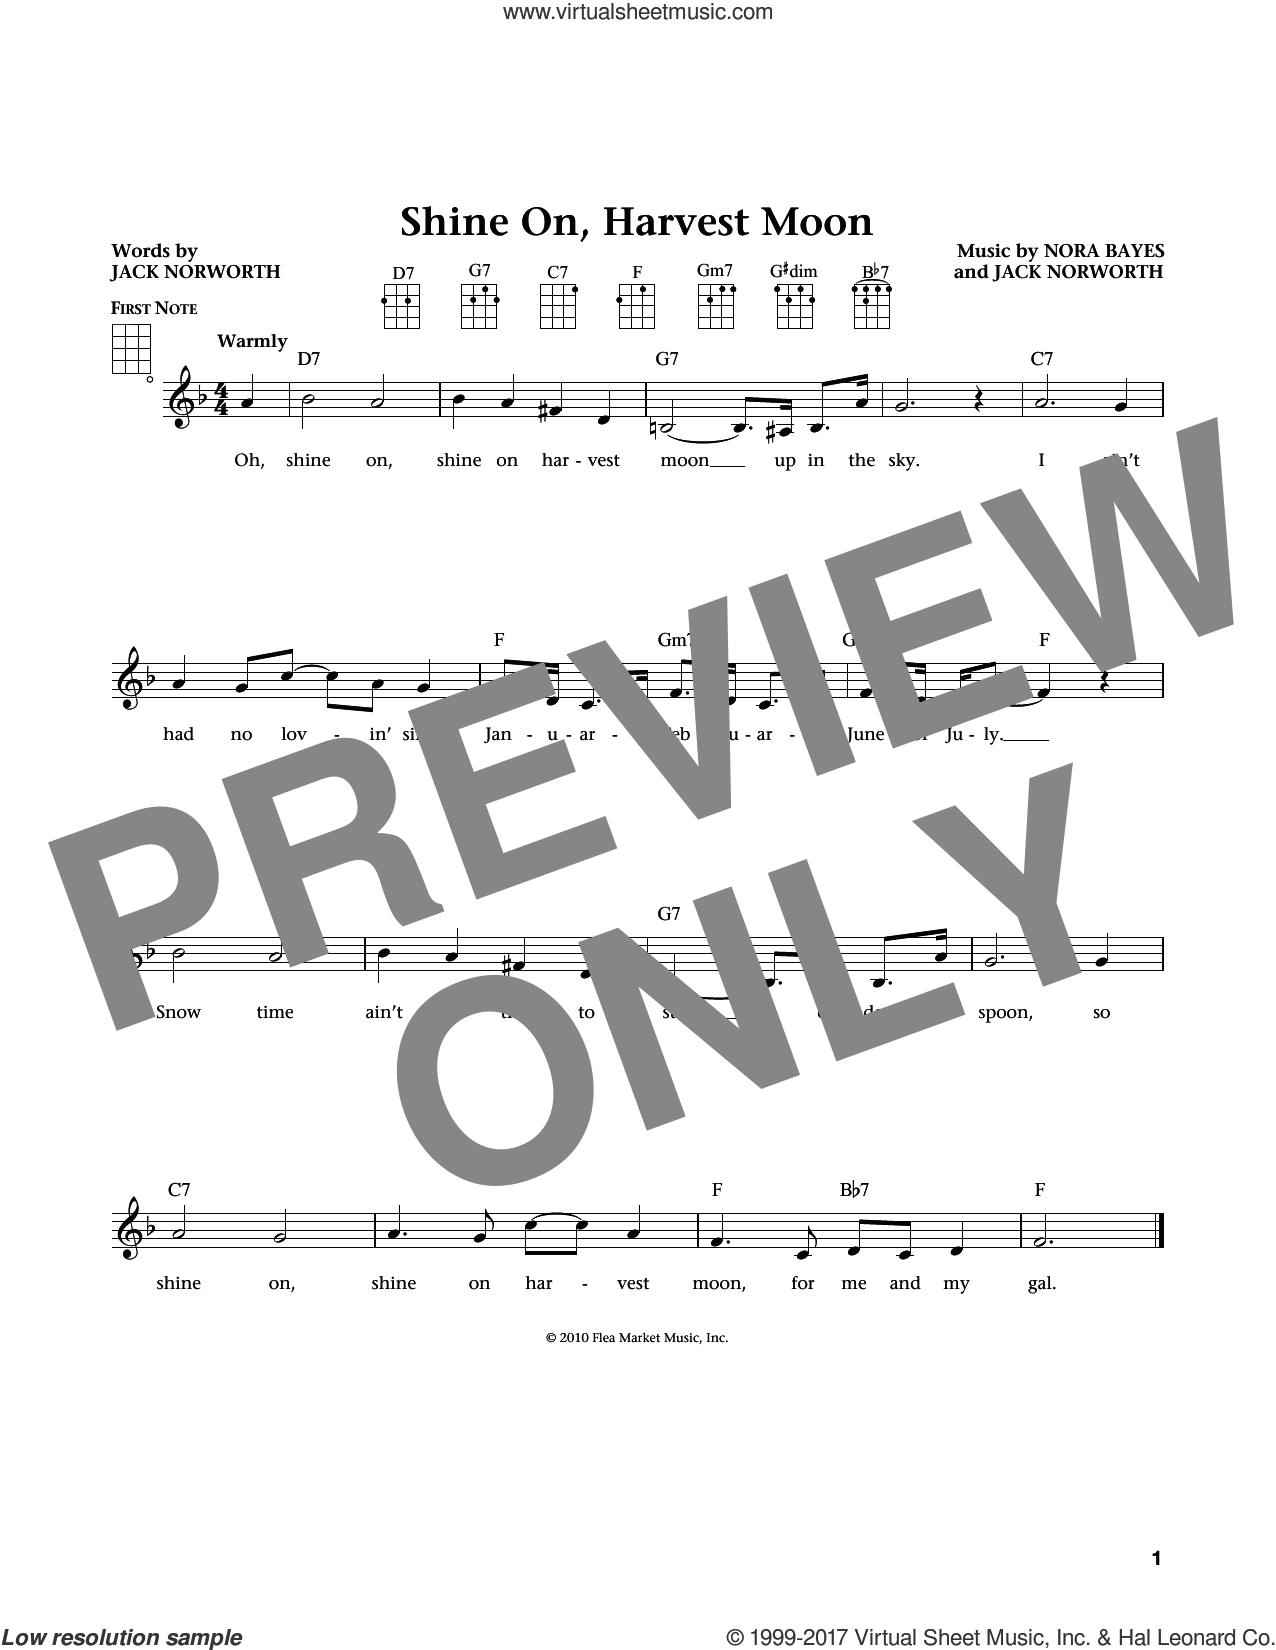 Shine On, Harvest Moon sheet music for ukulele by Jack Norworth, Jim Beloff, Liz Beloff and Nora Bayes, intermediate. Score Image Preview.